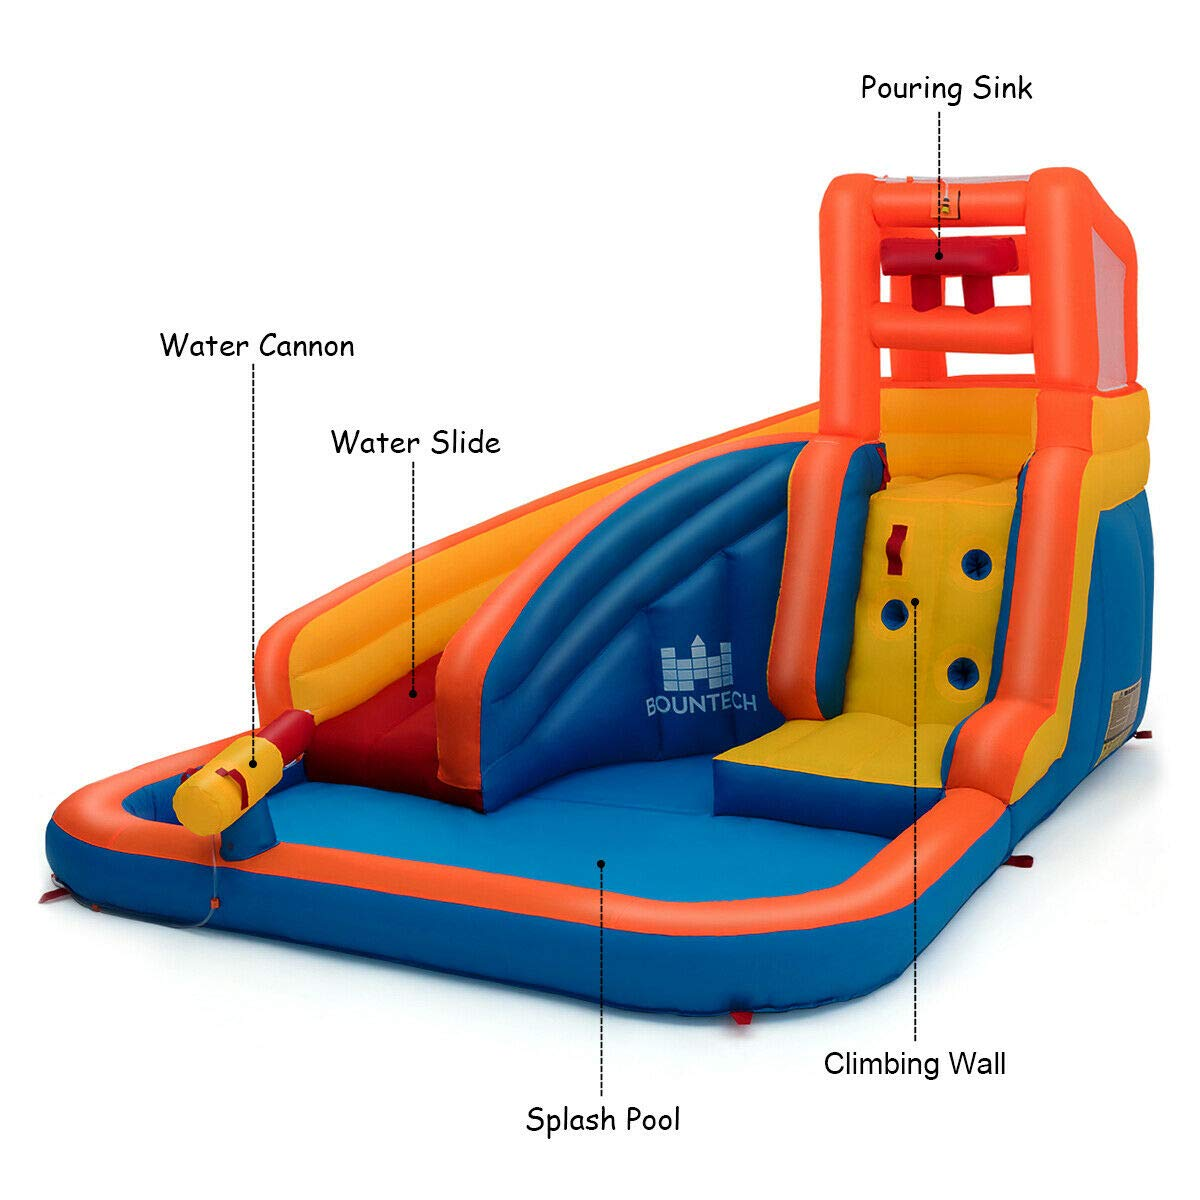 Heize Best Price Orange Inflatable Splash Water Bouncer Slide Bounce House w/ Climbing Wall & Water Hose Splash Pool(U.S. Stock) by Heize Best Price (Image #6)